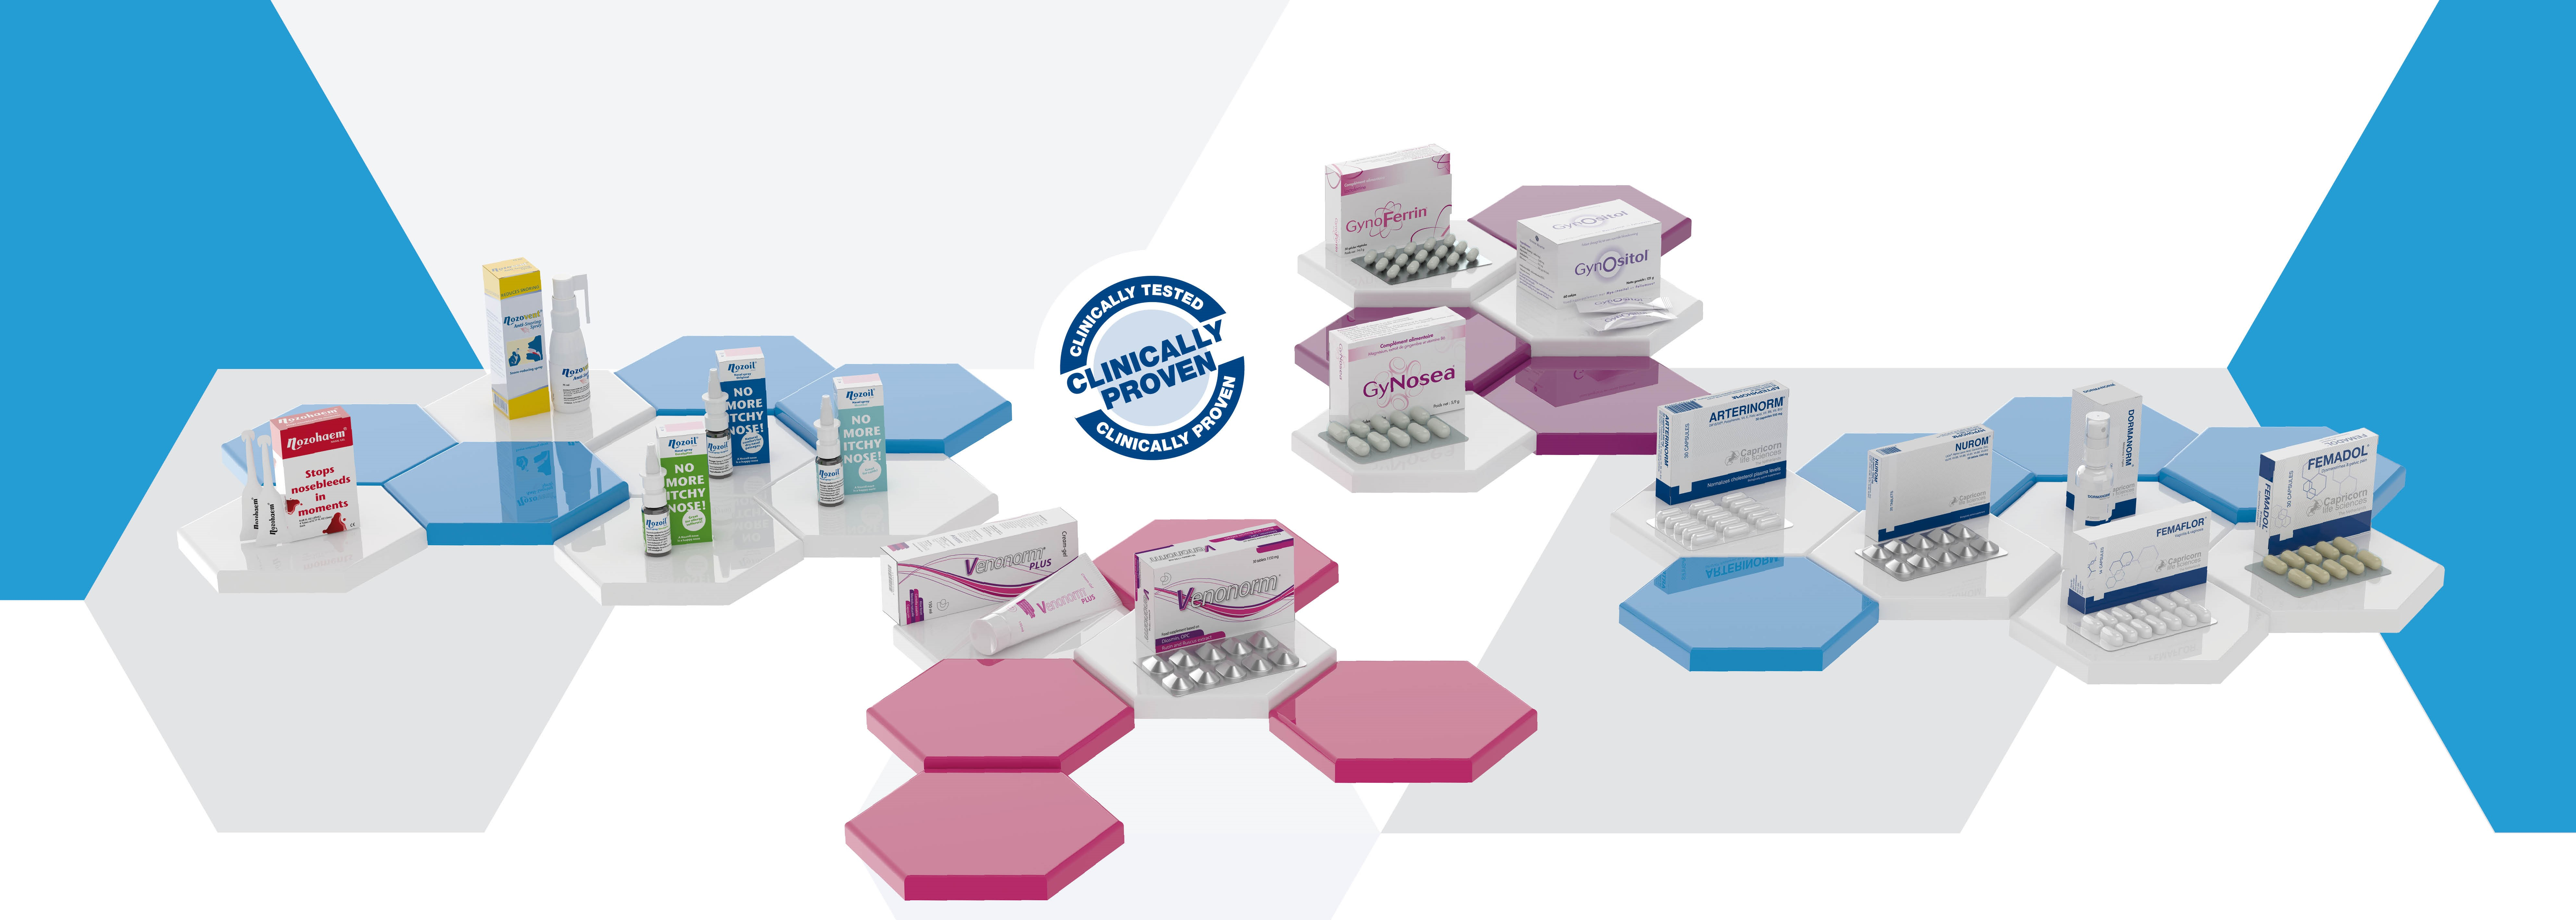 DORMANORM tablets